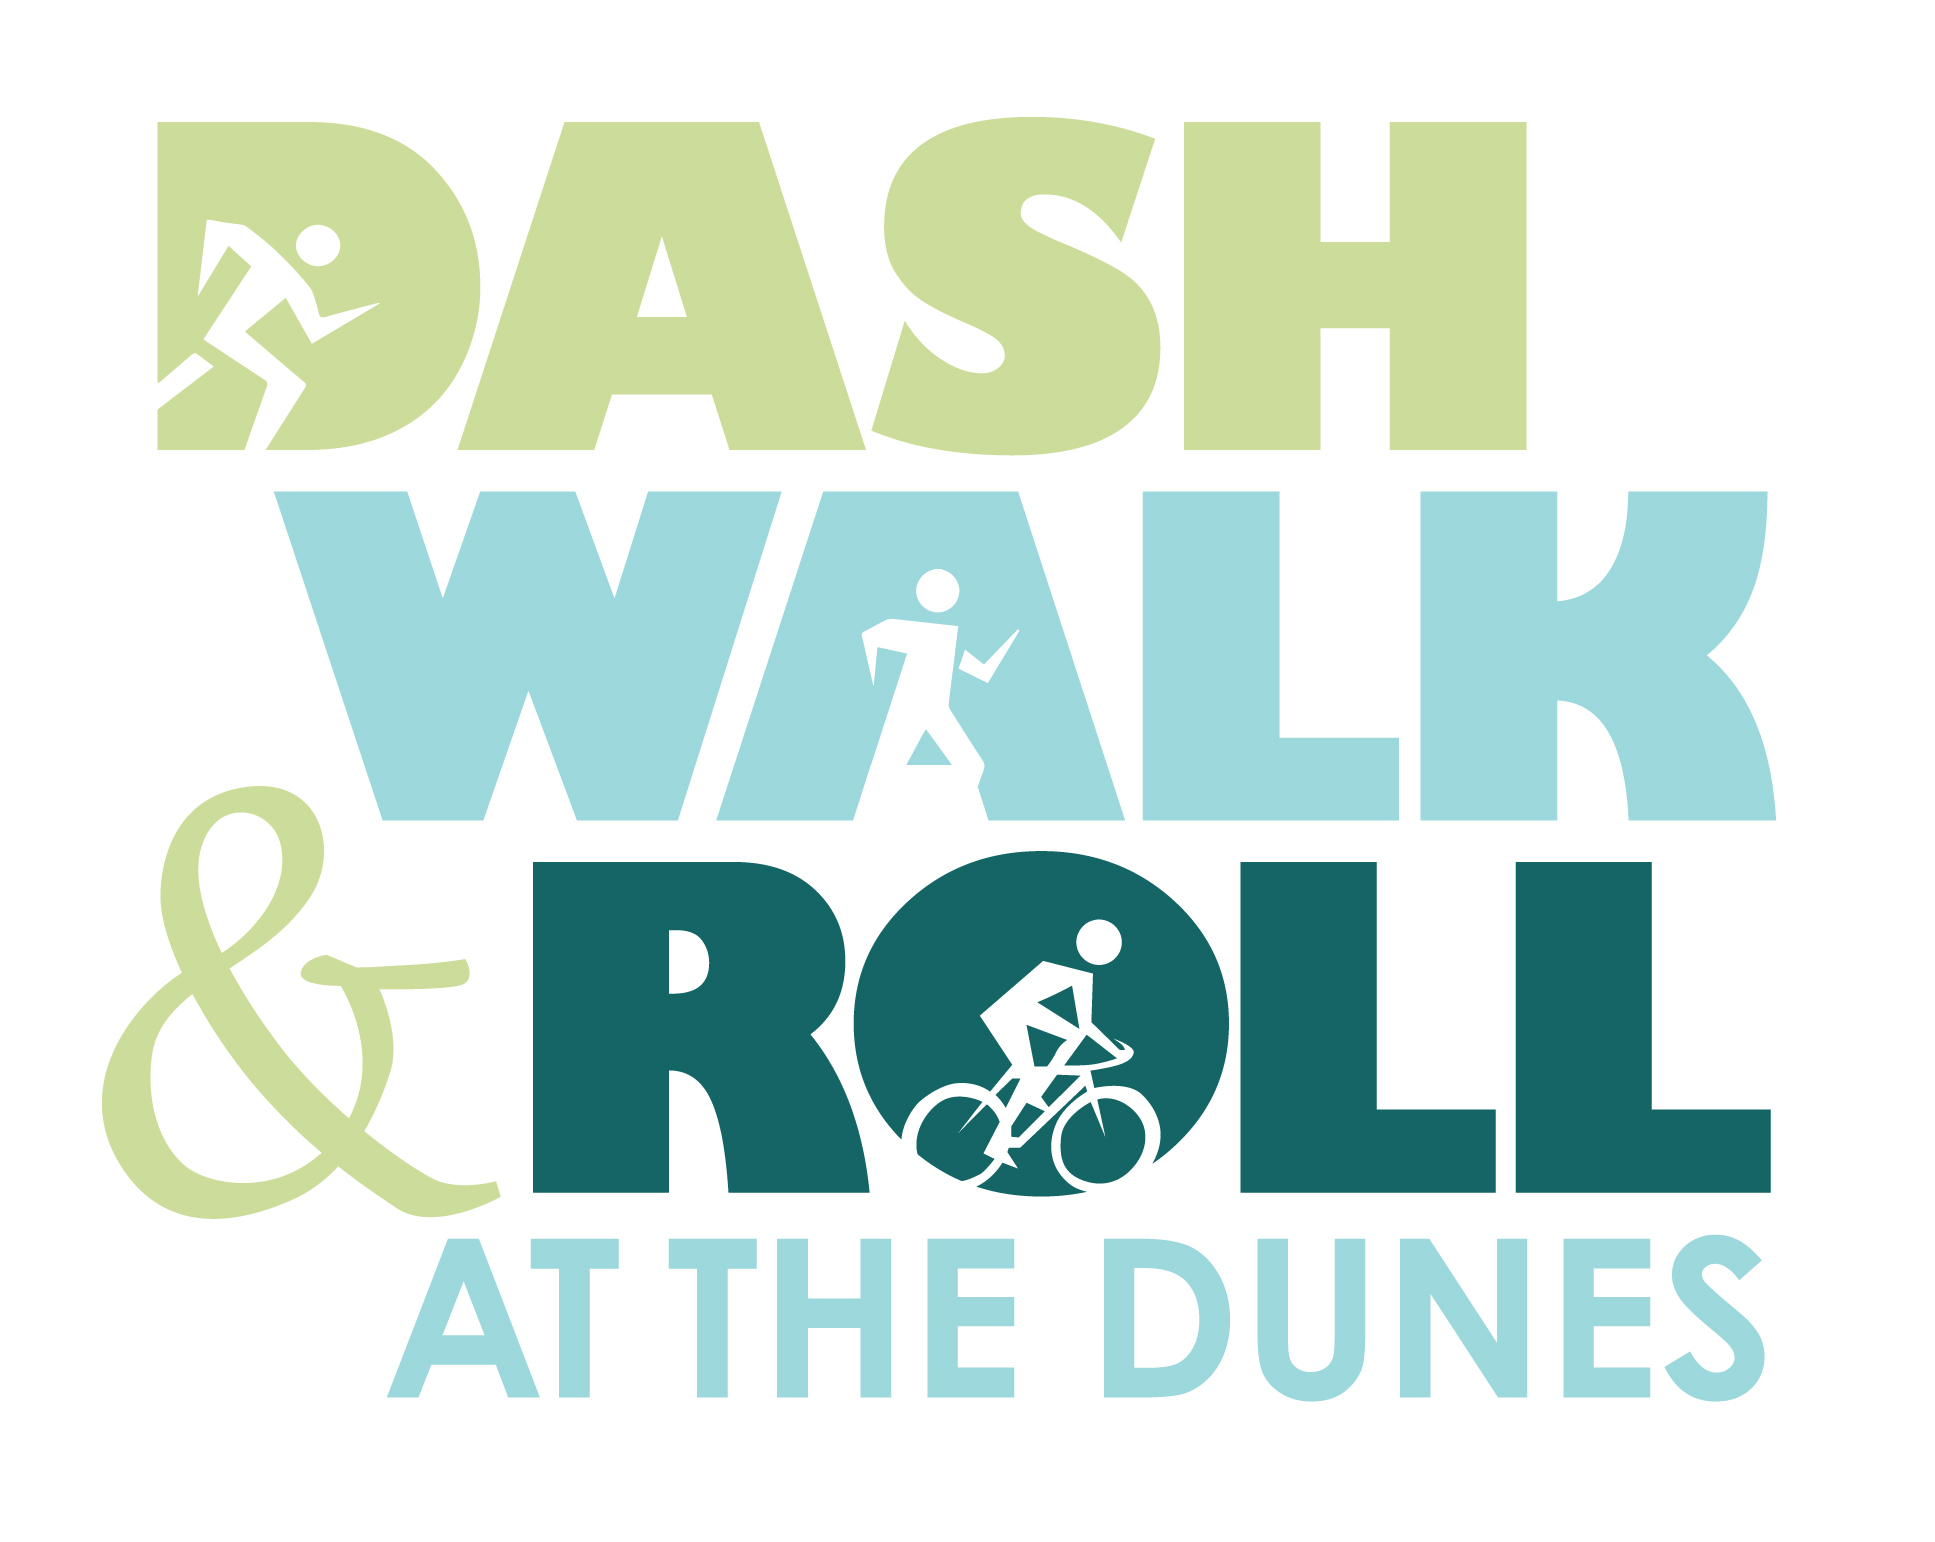 Dash, Walk & Roll! April 17 - May 1, 2021